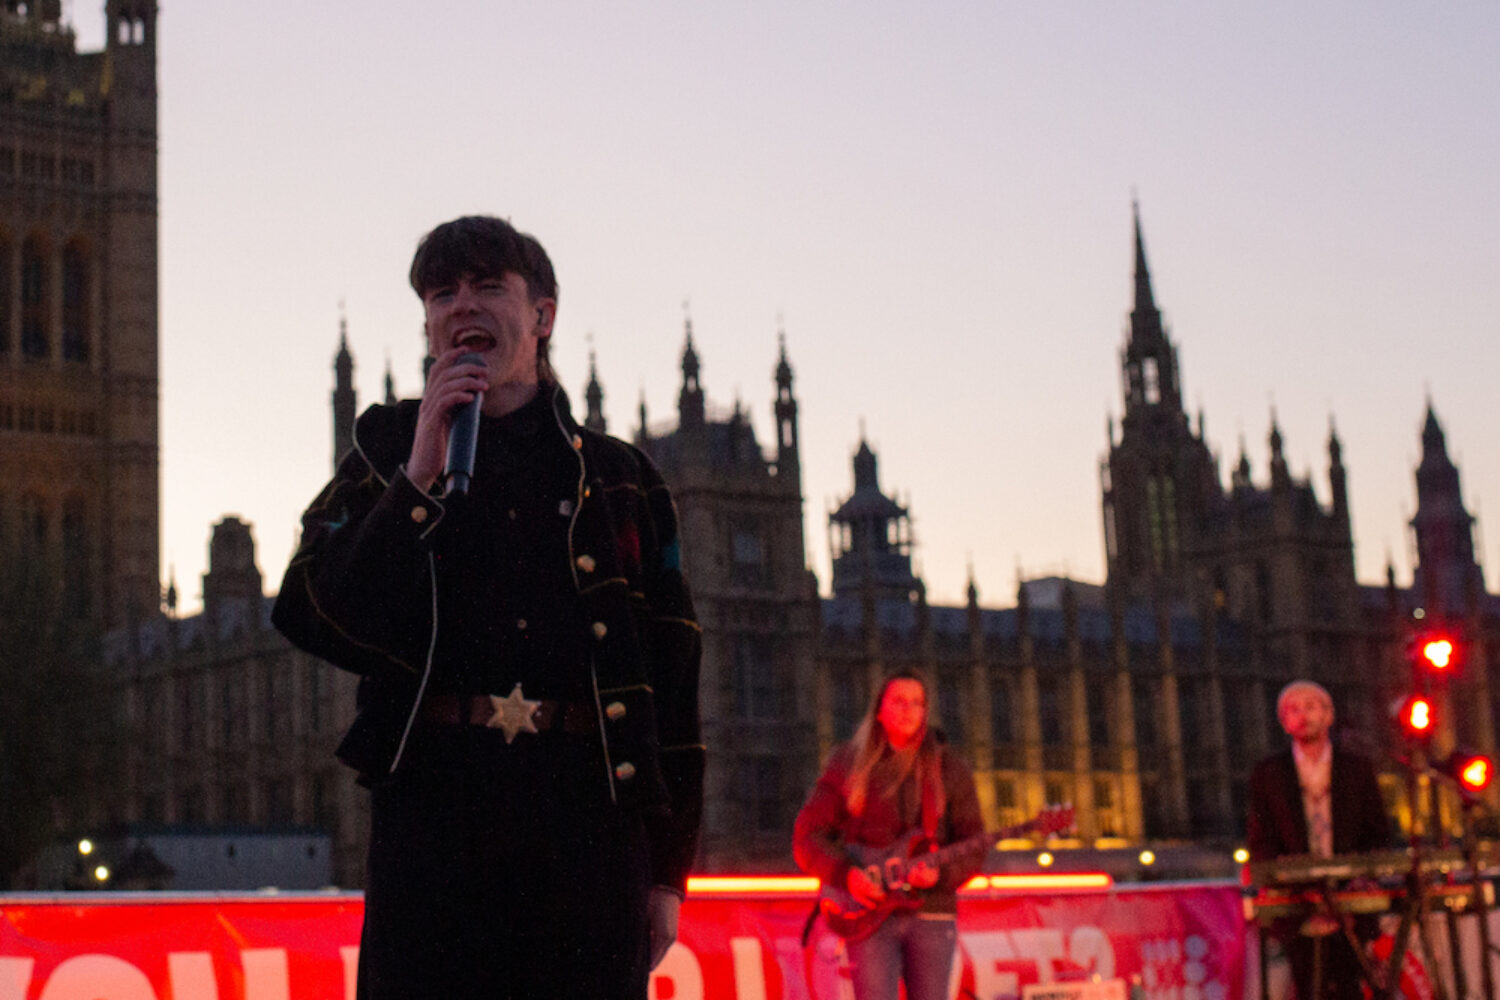 Declan McKenna performs 'British Bombs' outside the Houses of Parliament